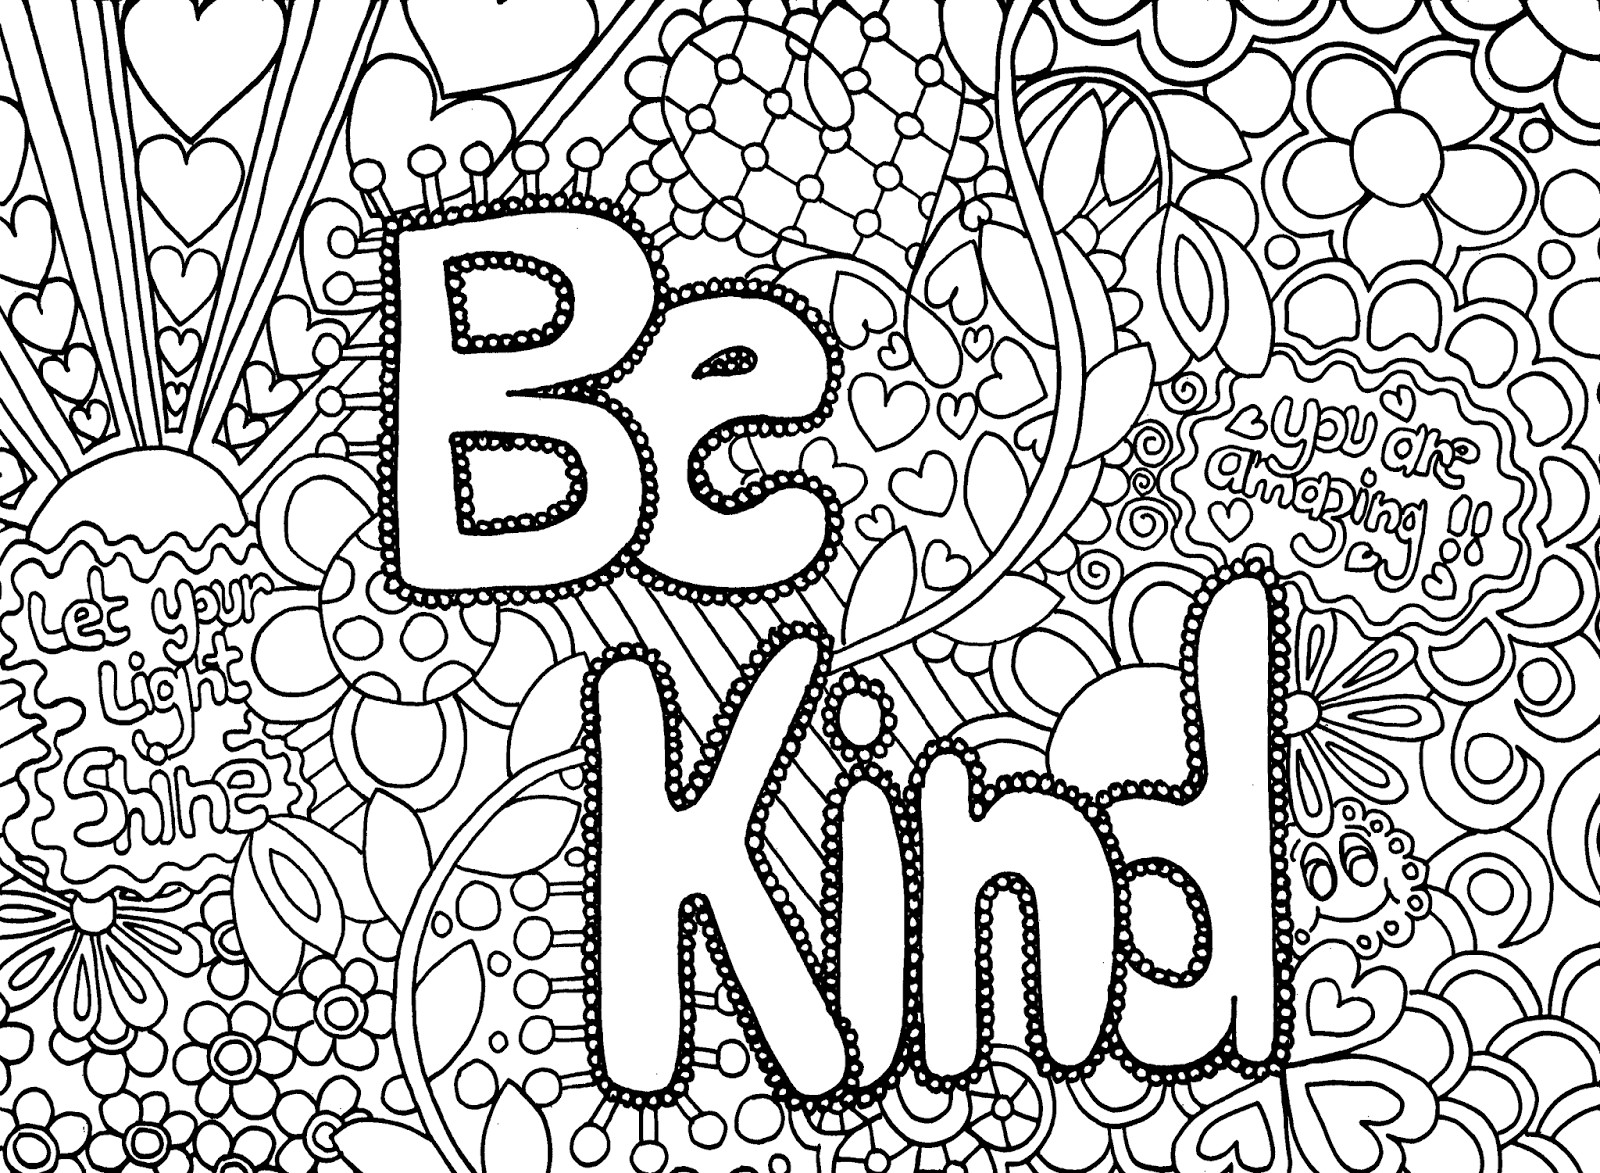 Best ideas about Free Printable Christmas Coloring Sheets For Girls Hard . Save or Pin Difficult Hard Coloring Pages Printable Now.